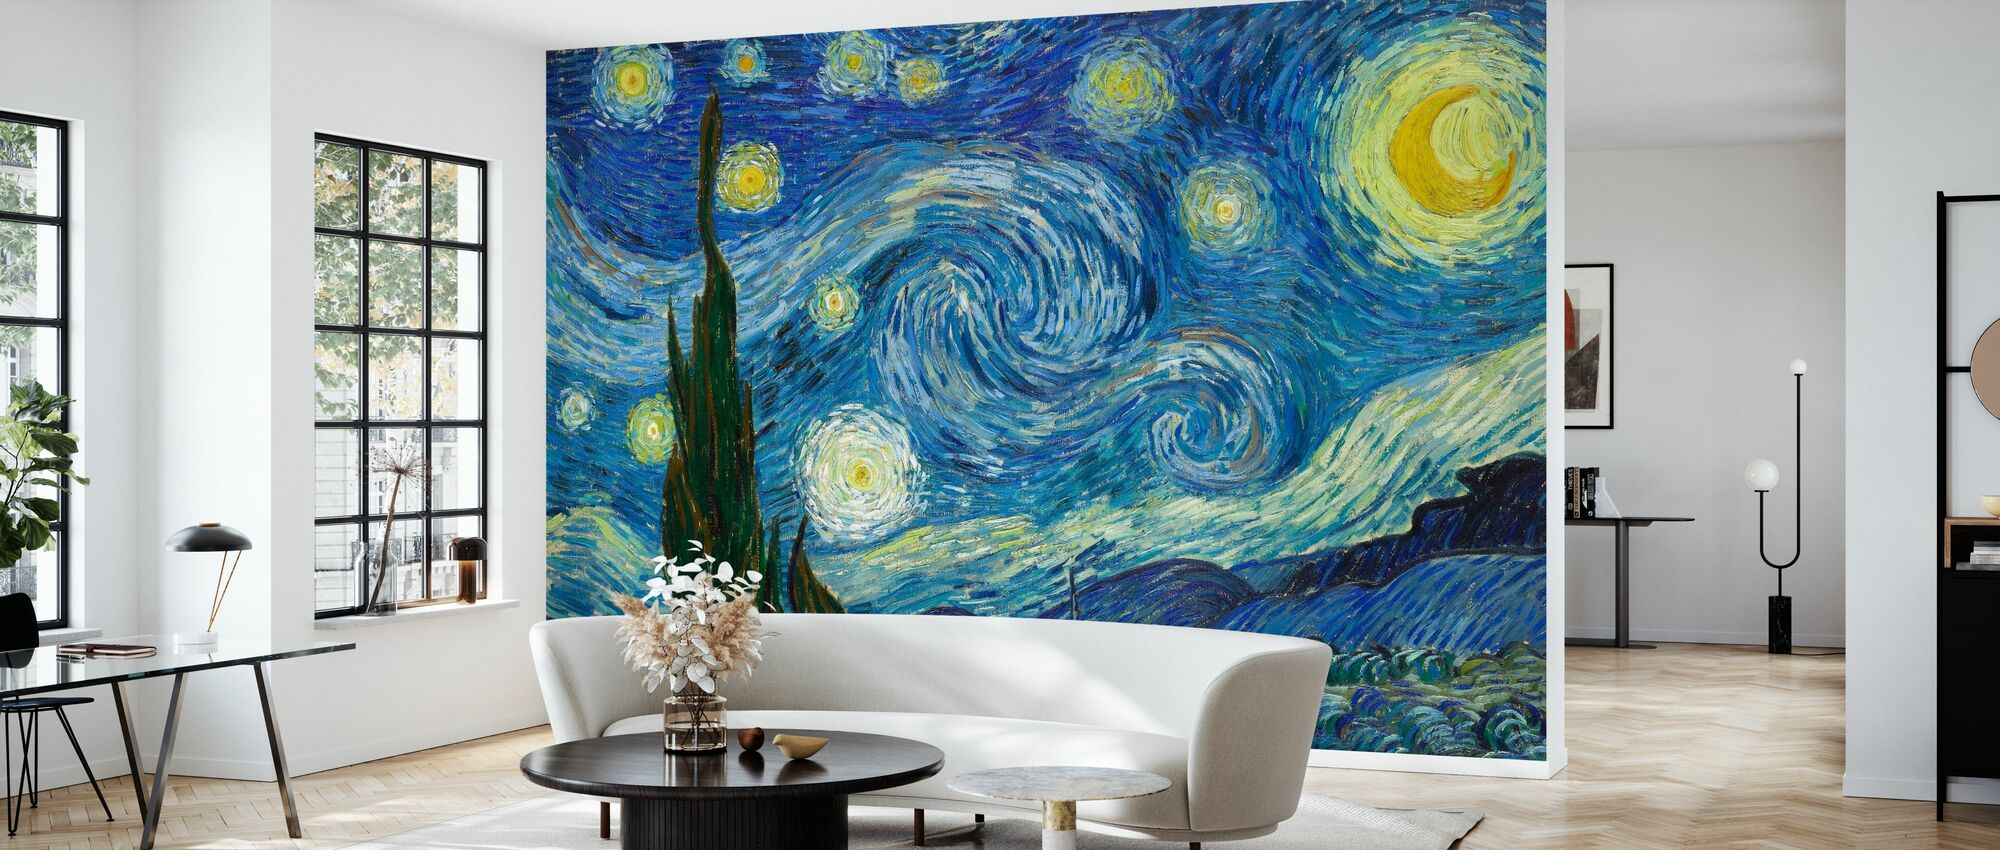 Vincent Van Gogh - Starry Night - Wallpaper - Living Room